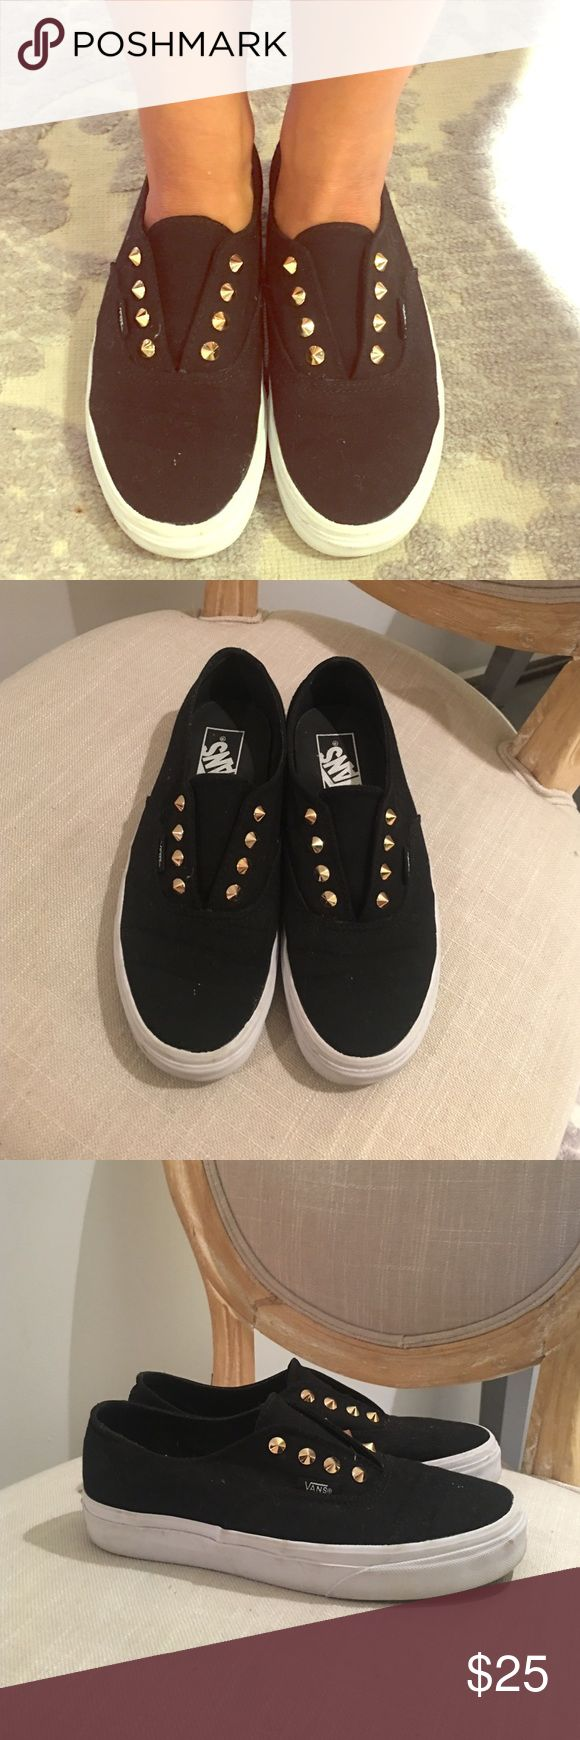 Vans 'Gore' Stude Black Slip-On Shoes Purchased @ Zumiez in Spring 2016.  Look adorable on. ***************From ZUMIEZ.com product description: Add some luxe flavor to any outfit with these classic style slip-on shoes that are made with a chic black materials finished with gold studded detail. Vans Shoes Sneakers